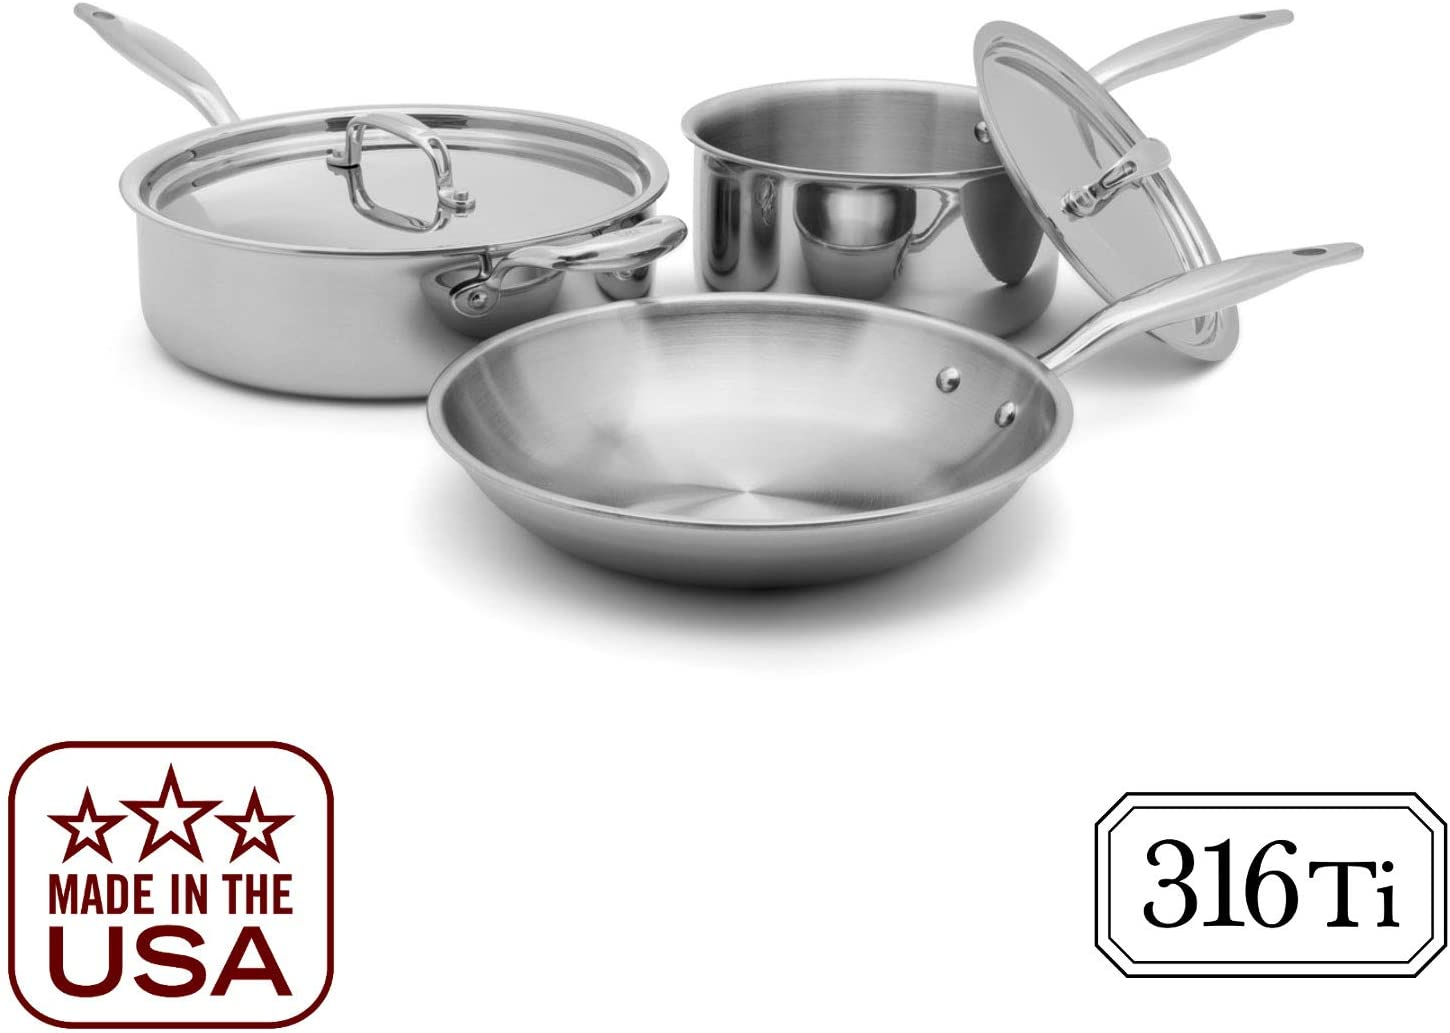 Heritage Steel 5 Piece Essentials Cookware Set - Titanium Strengthened 316Ti Stainless Steel with 7-Ply Construction - Induction-Ready and Dishwasher-Safe, Made in USA